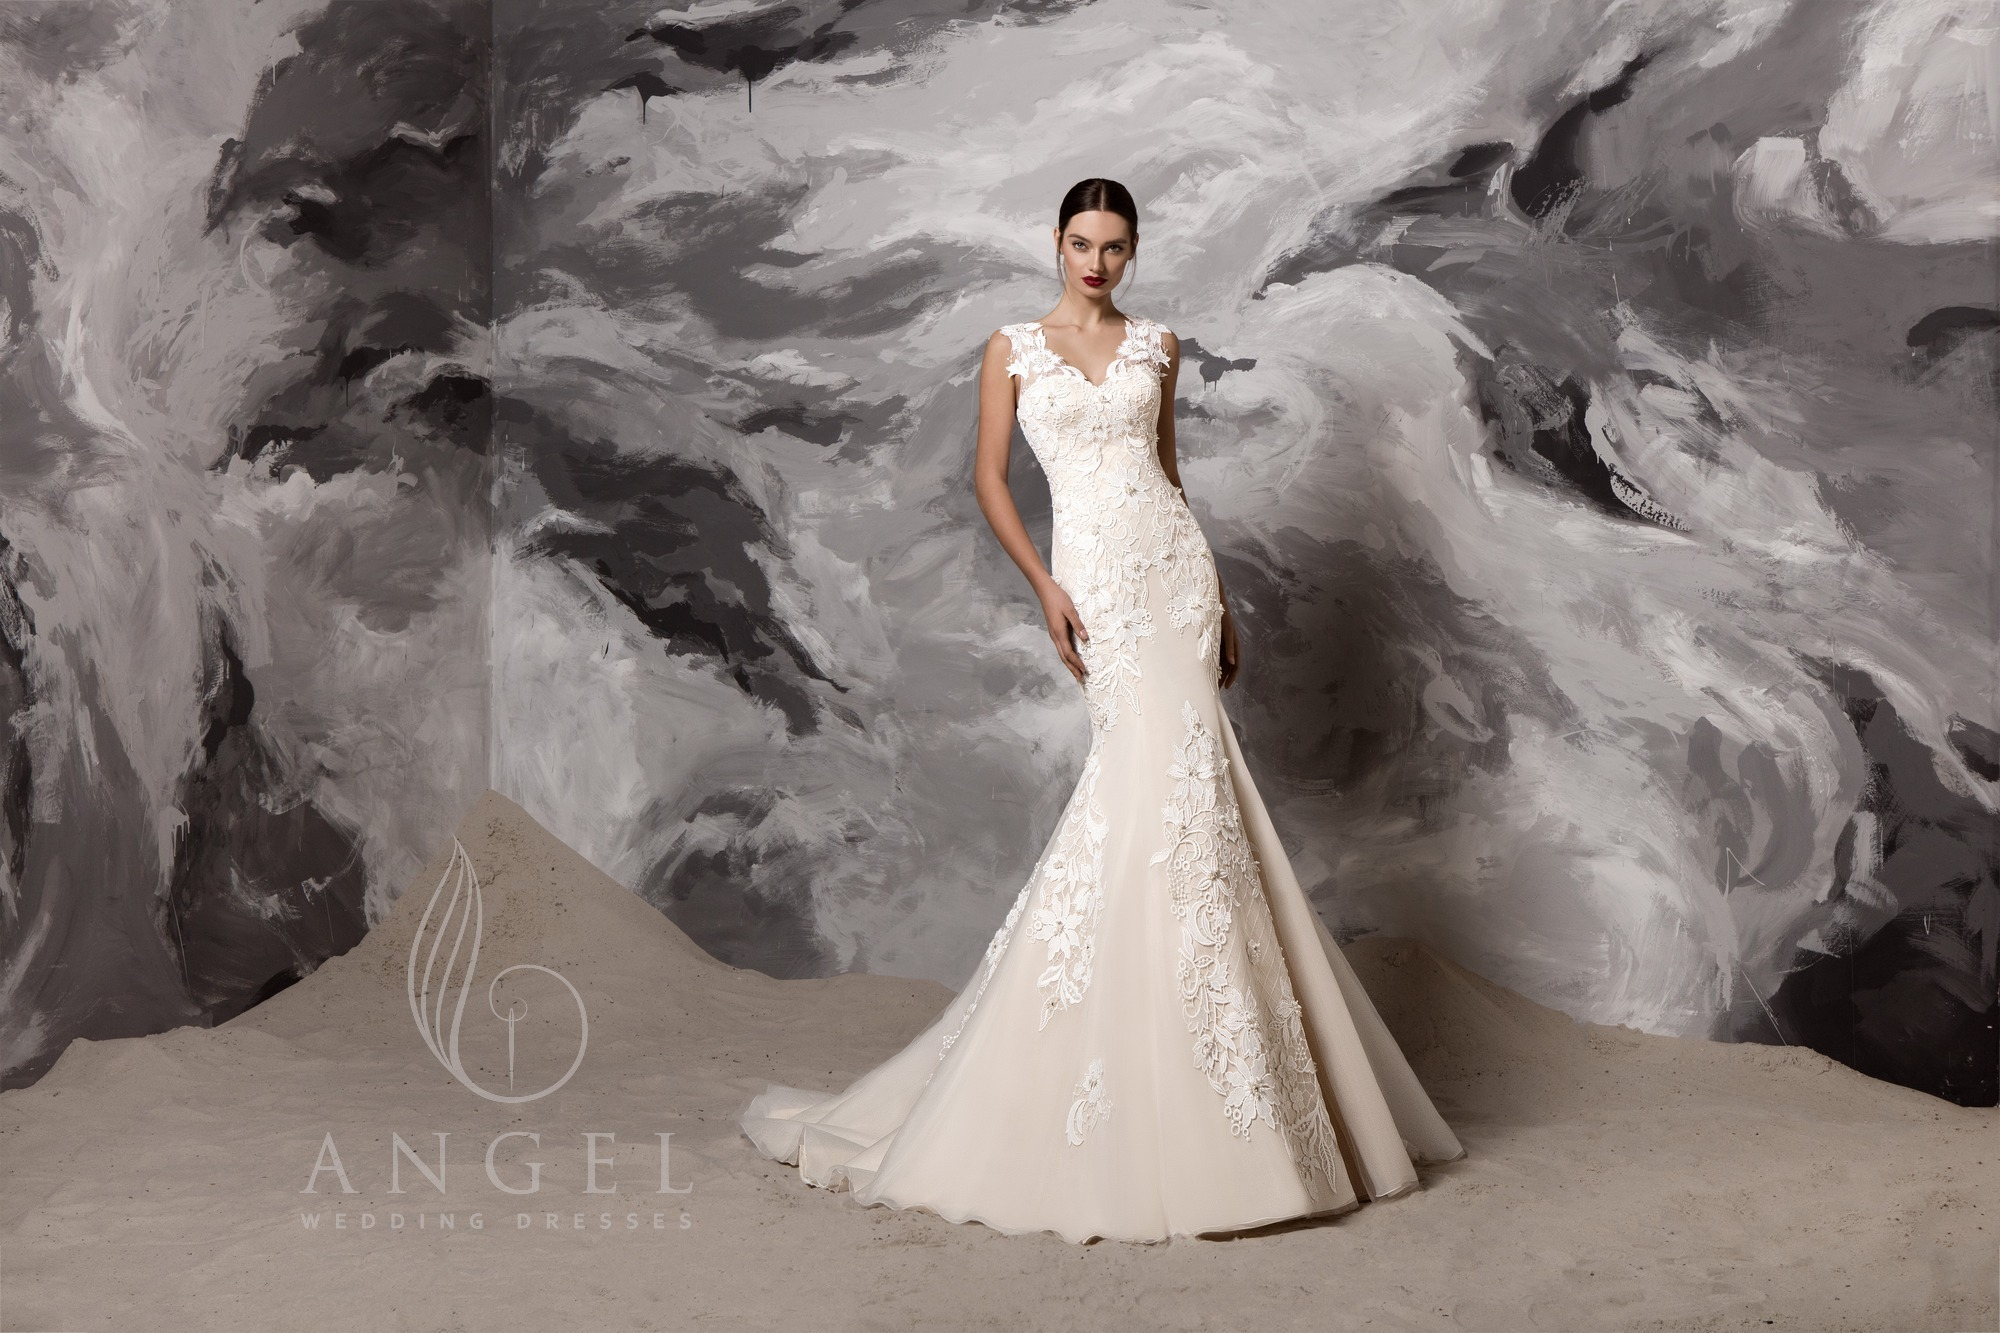 https://angel-novias.com/images/stories/virtuemart/product/Mancera.jpg